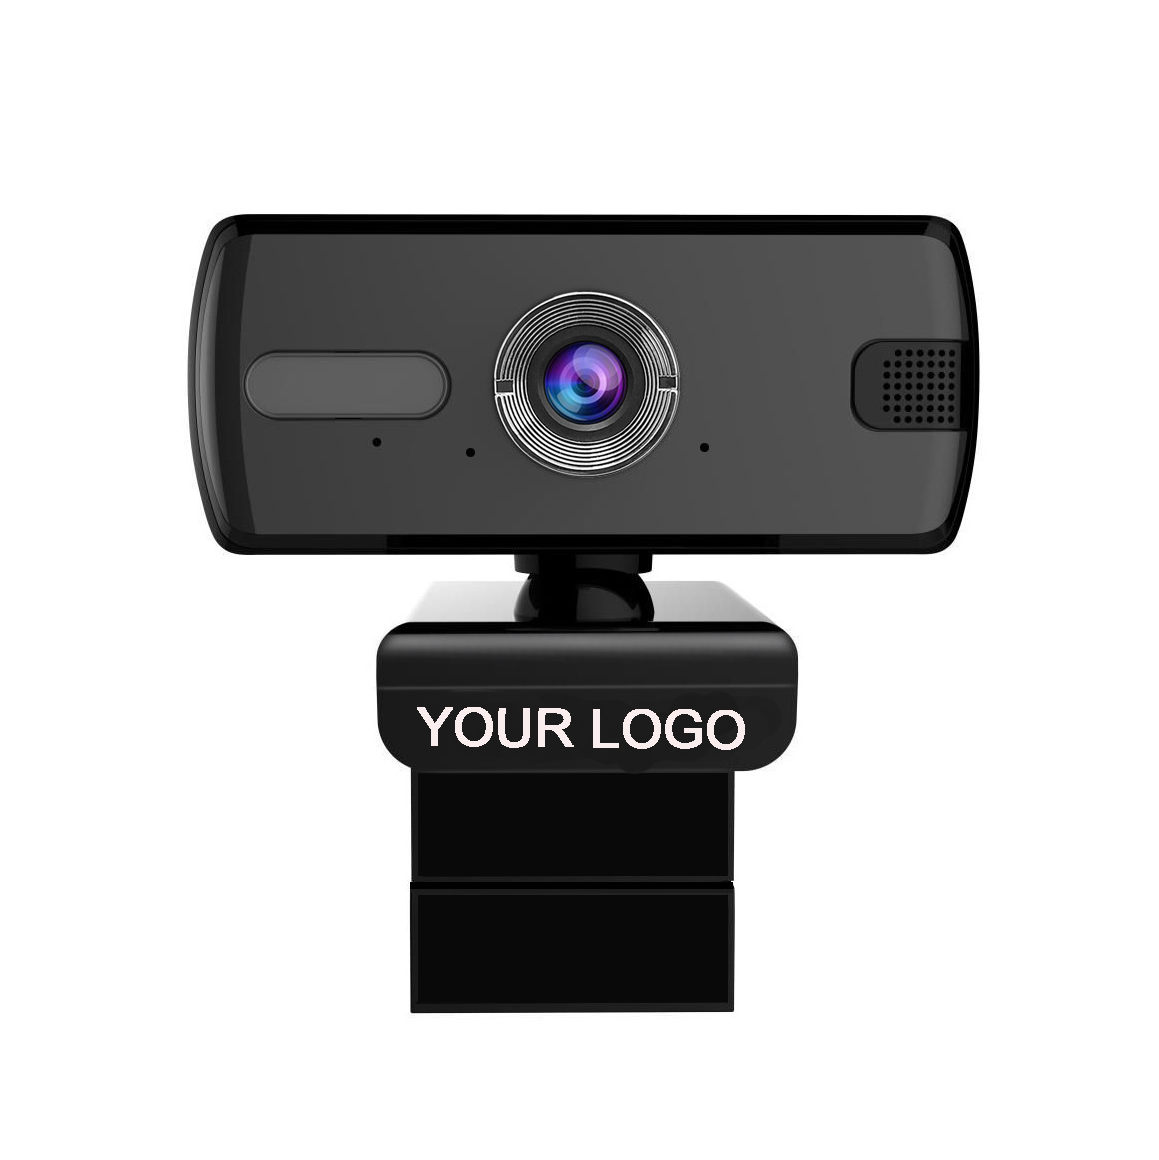 Amazon Hot 1080P USB Device 3MP PC USB WEBCAM Camera for video conferencing And Remote Working